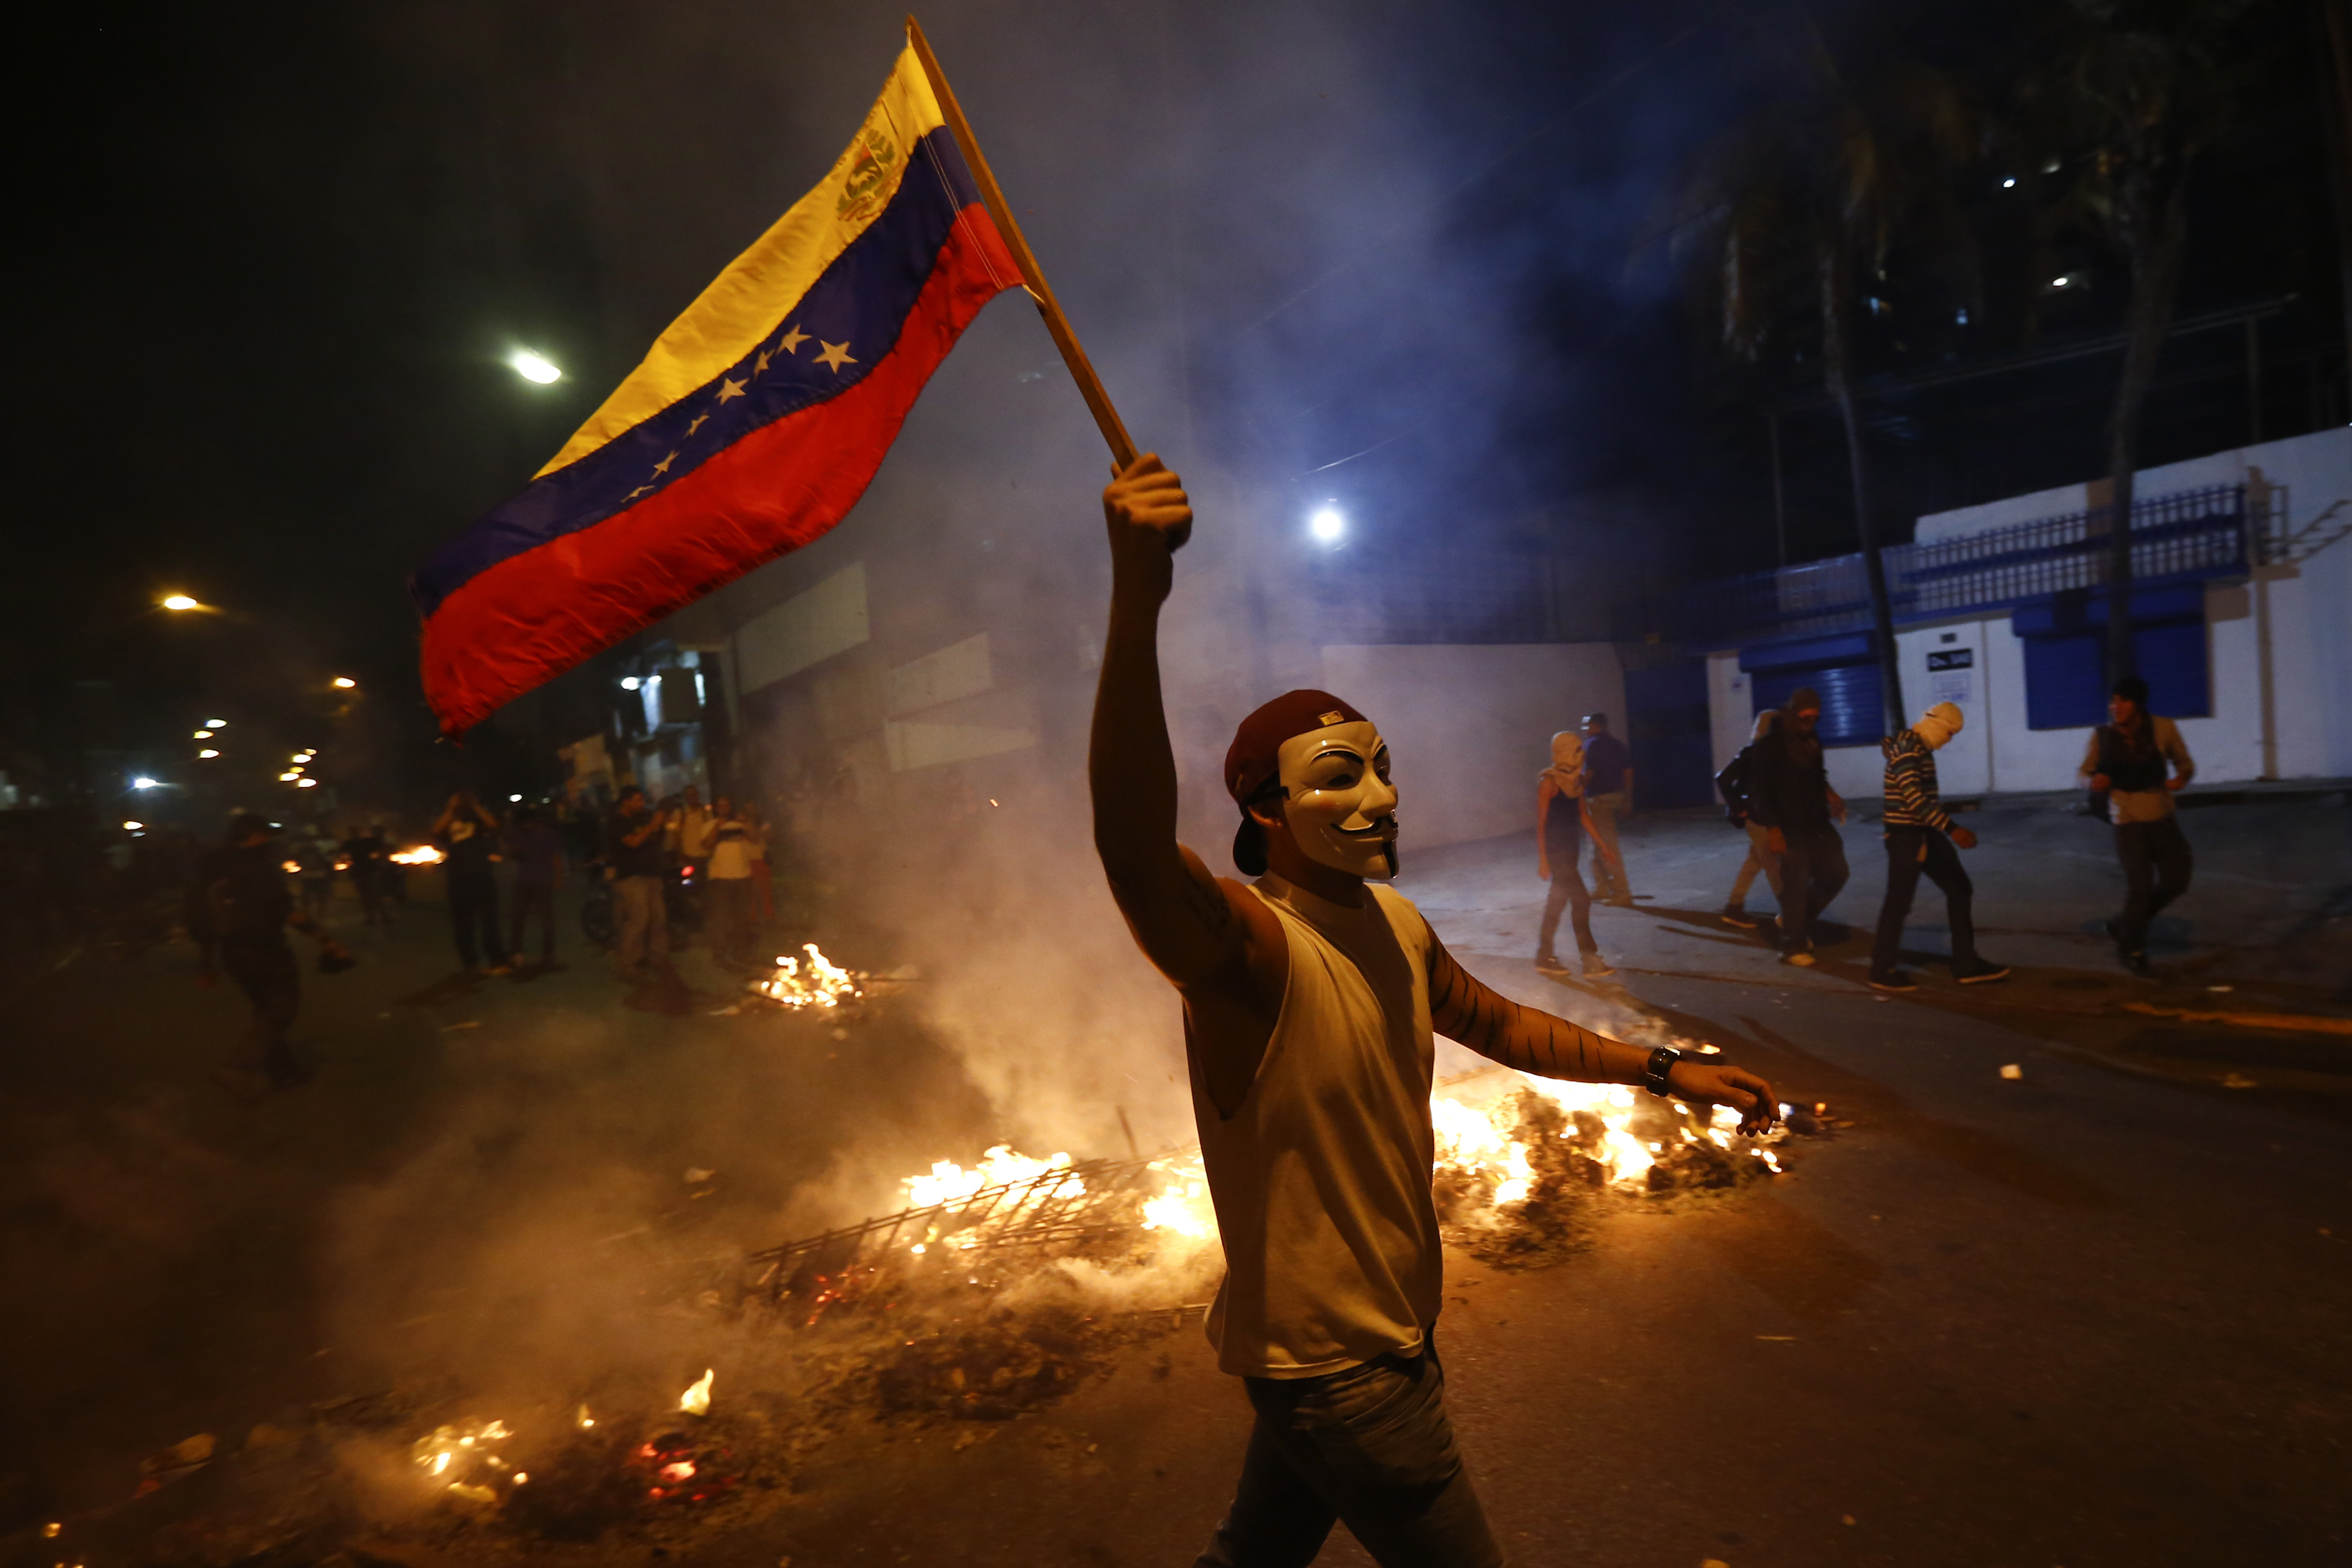 Maduro's Fledgling Dictatorship